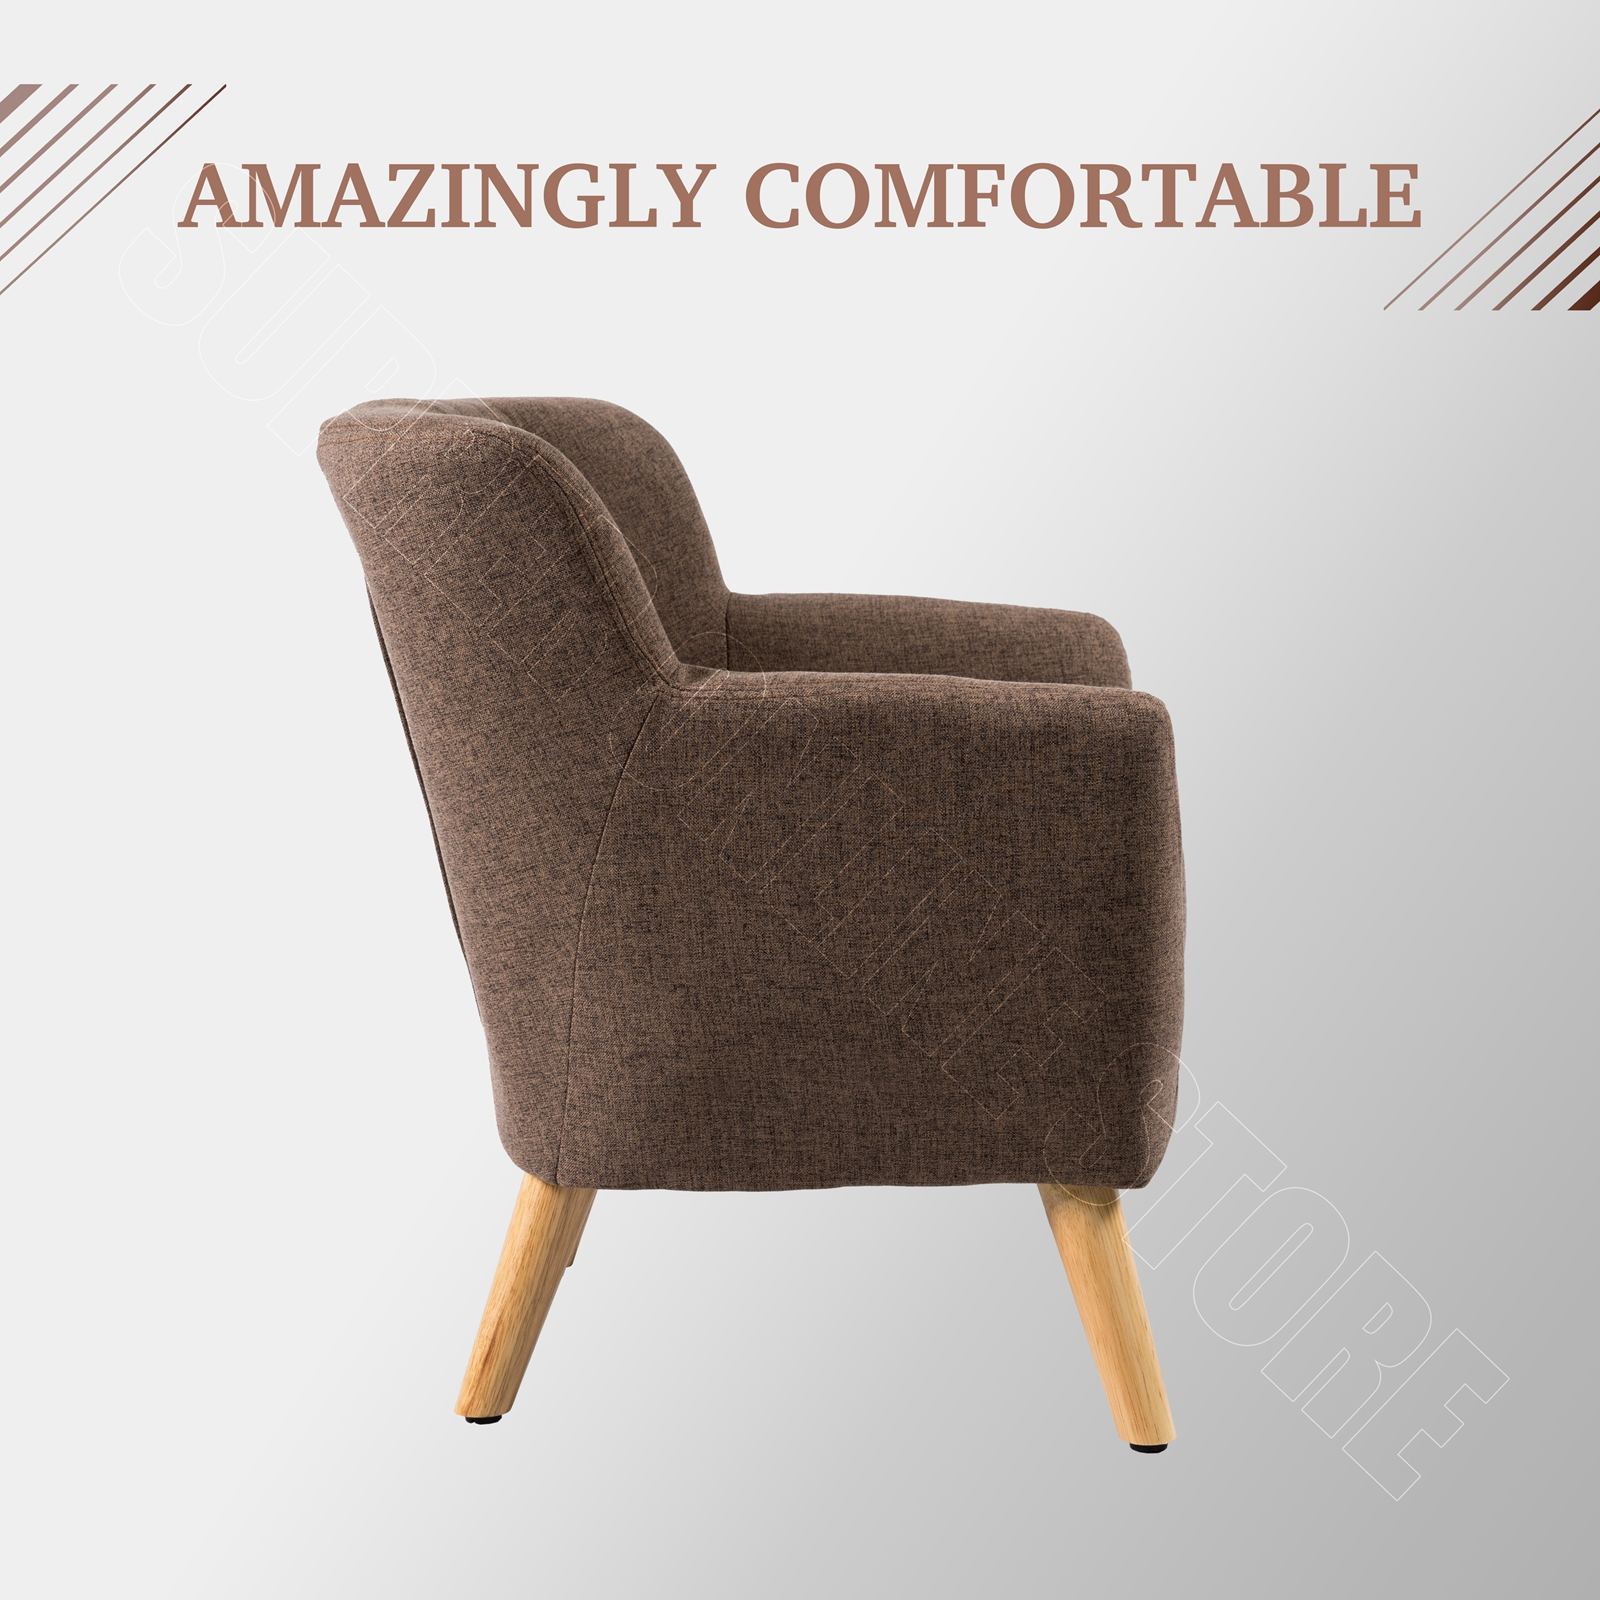 kids arm chairs best big and tall office chair reddit accent fabric wooden lorraine french sofa